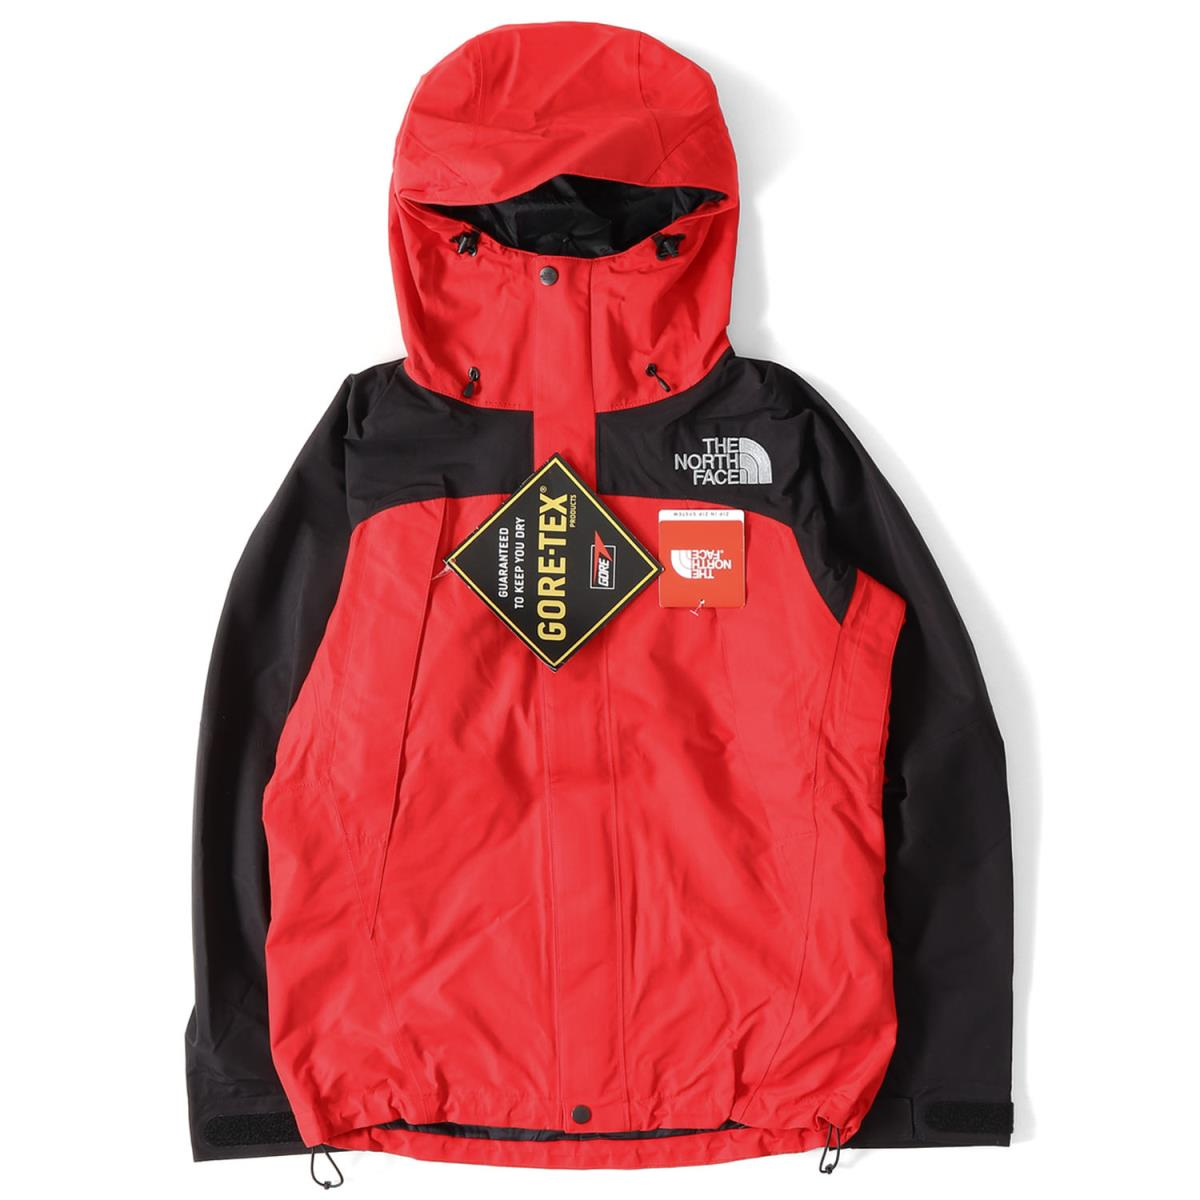 THE NORTH FACE (the North Face) 15A W GORE-TEX mountain jacket (MOUNTAIN  JACKET) red X black S cb9c5bc54f88